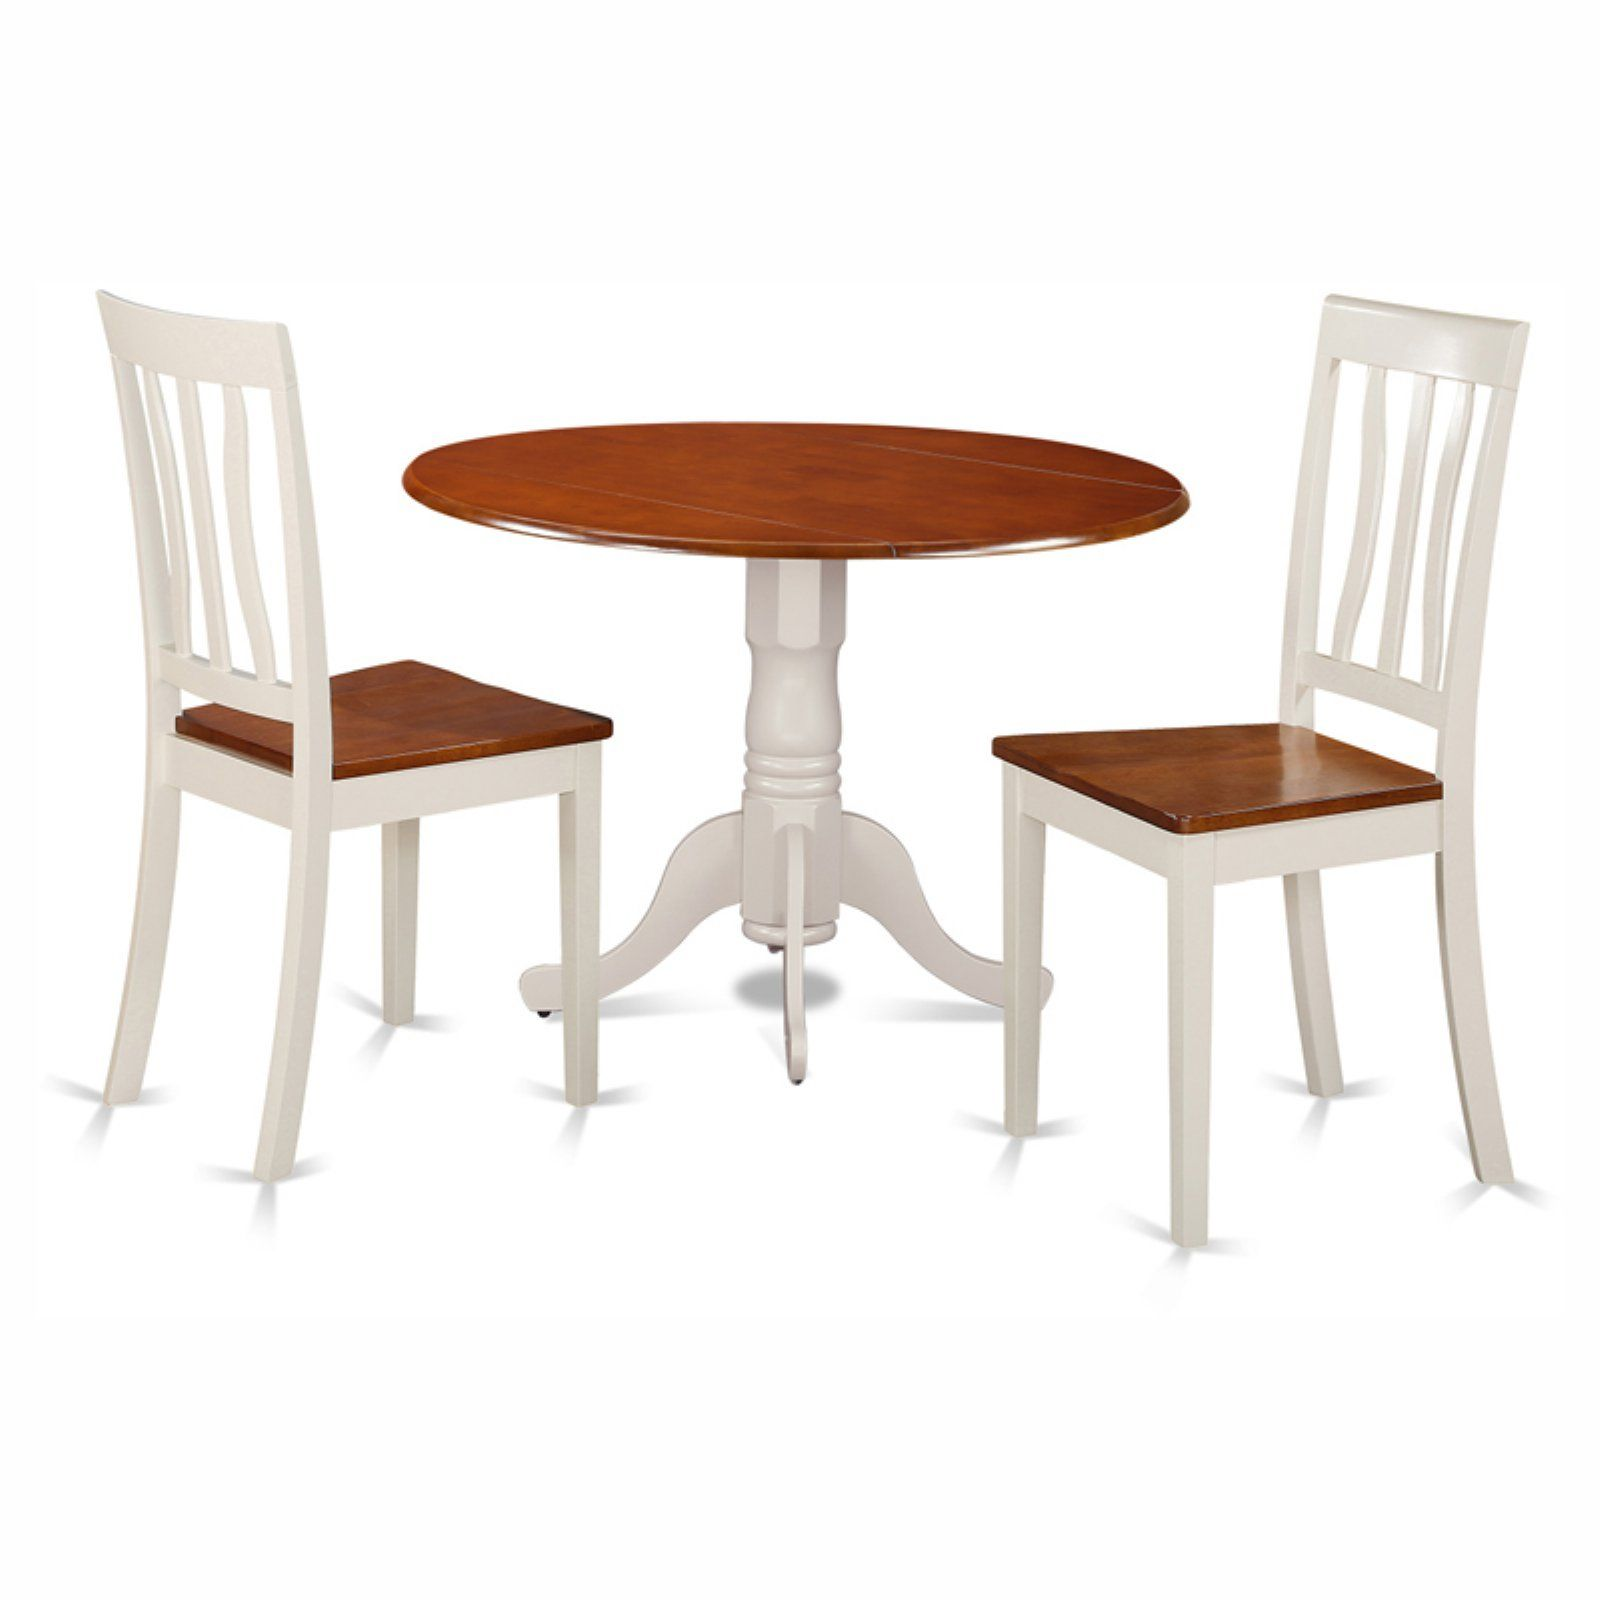 Marvelous East West Furniture Dublin 3 Piece Drop Leaf Round Dining Ncnpc Chair Design For Home Ncnpcorg